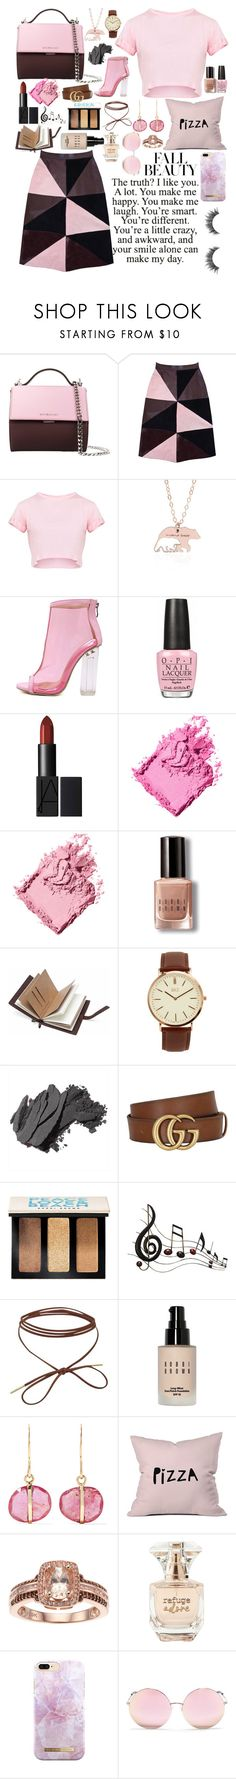 """brown and pink."" by pikamikey ❤ liked on Polyvore featuring Givenchy, Florence Bridge, WithChic, OPI, Bobbi Brown Cosmetics, BKE, Gucci, Benzara, Melissa Joy Manning and DENY Designs"